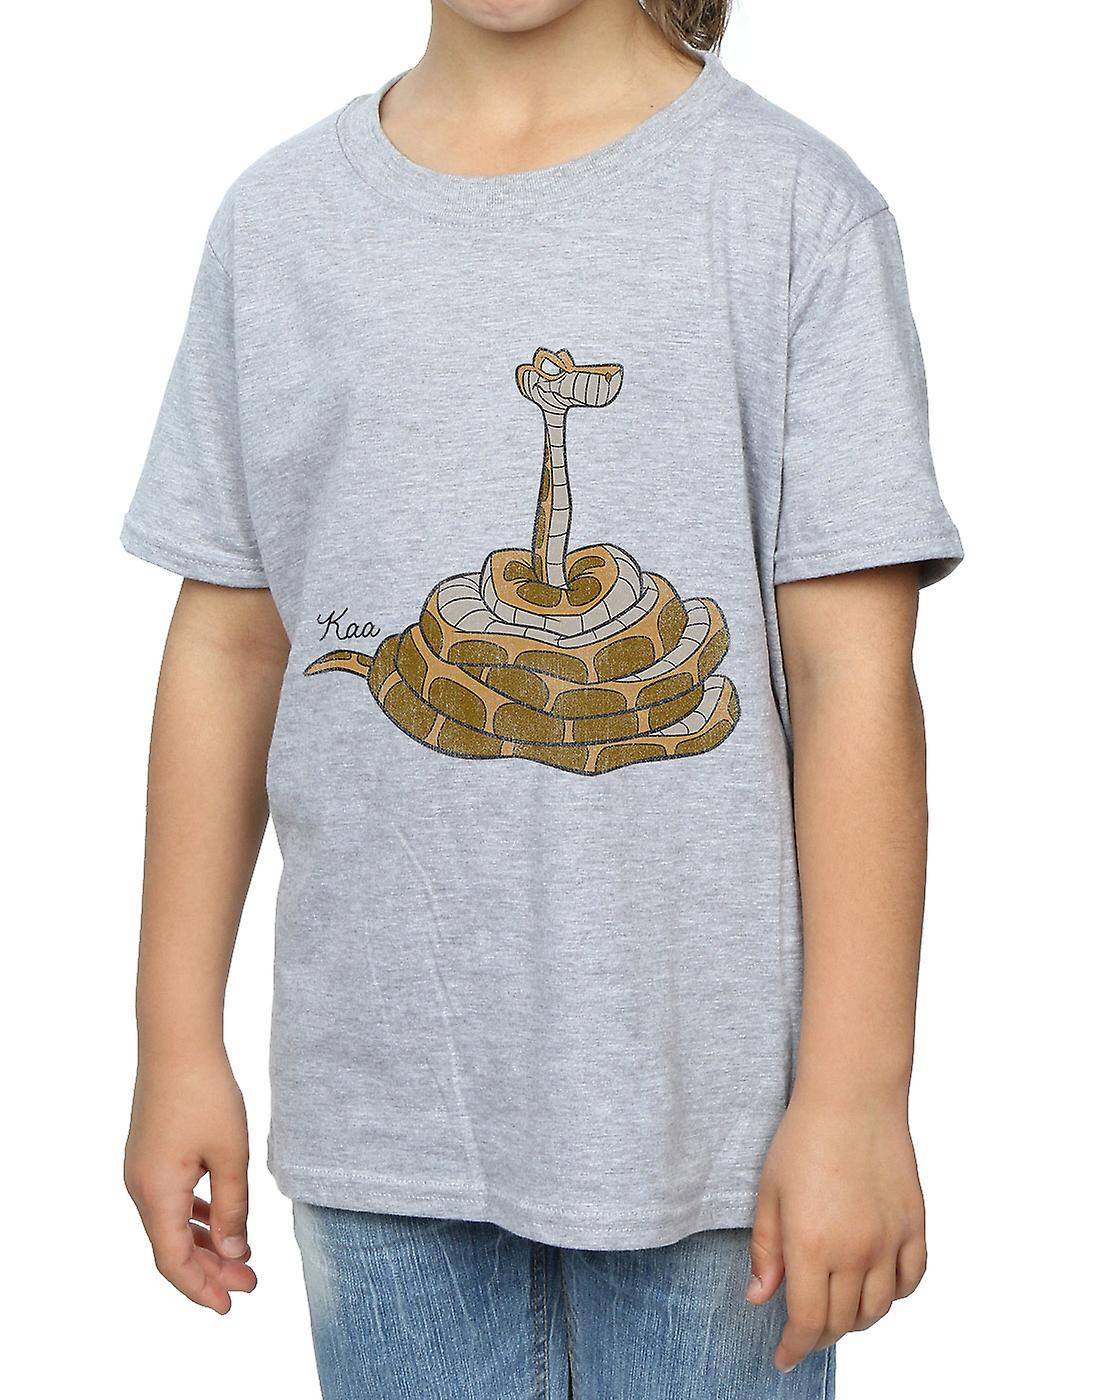 Classic Book Cover Tee Shirts : Disney girls the jungle book classic kaa t shirt fruugo